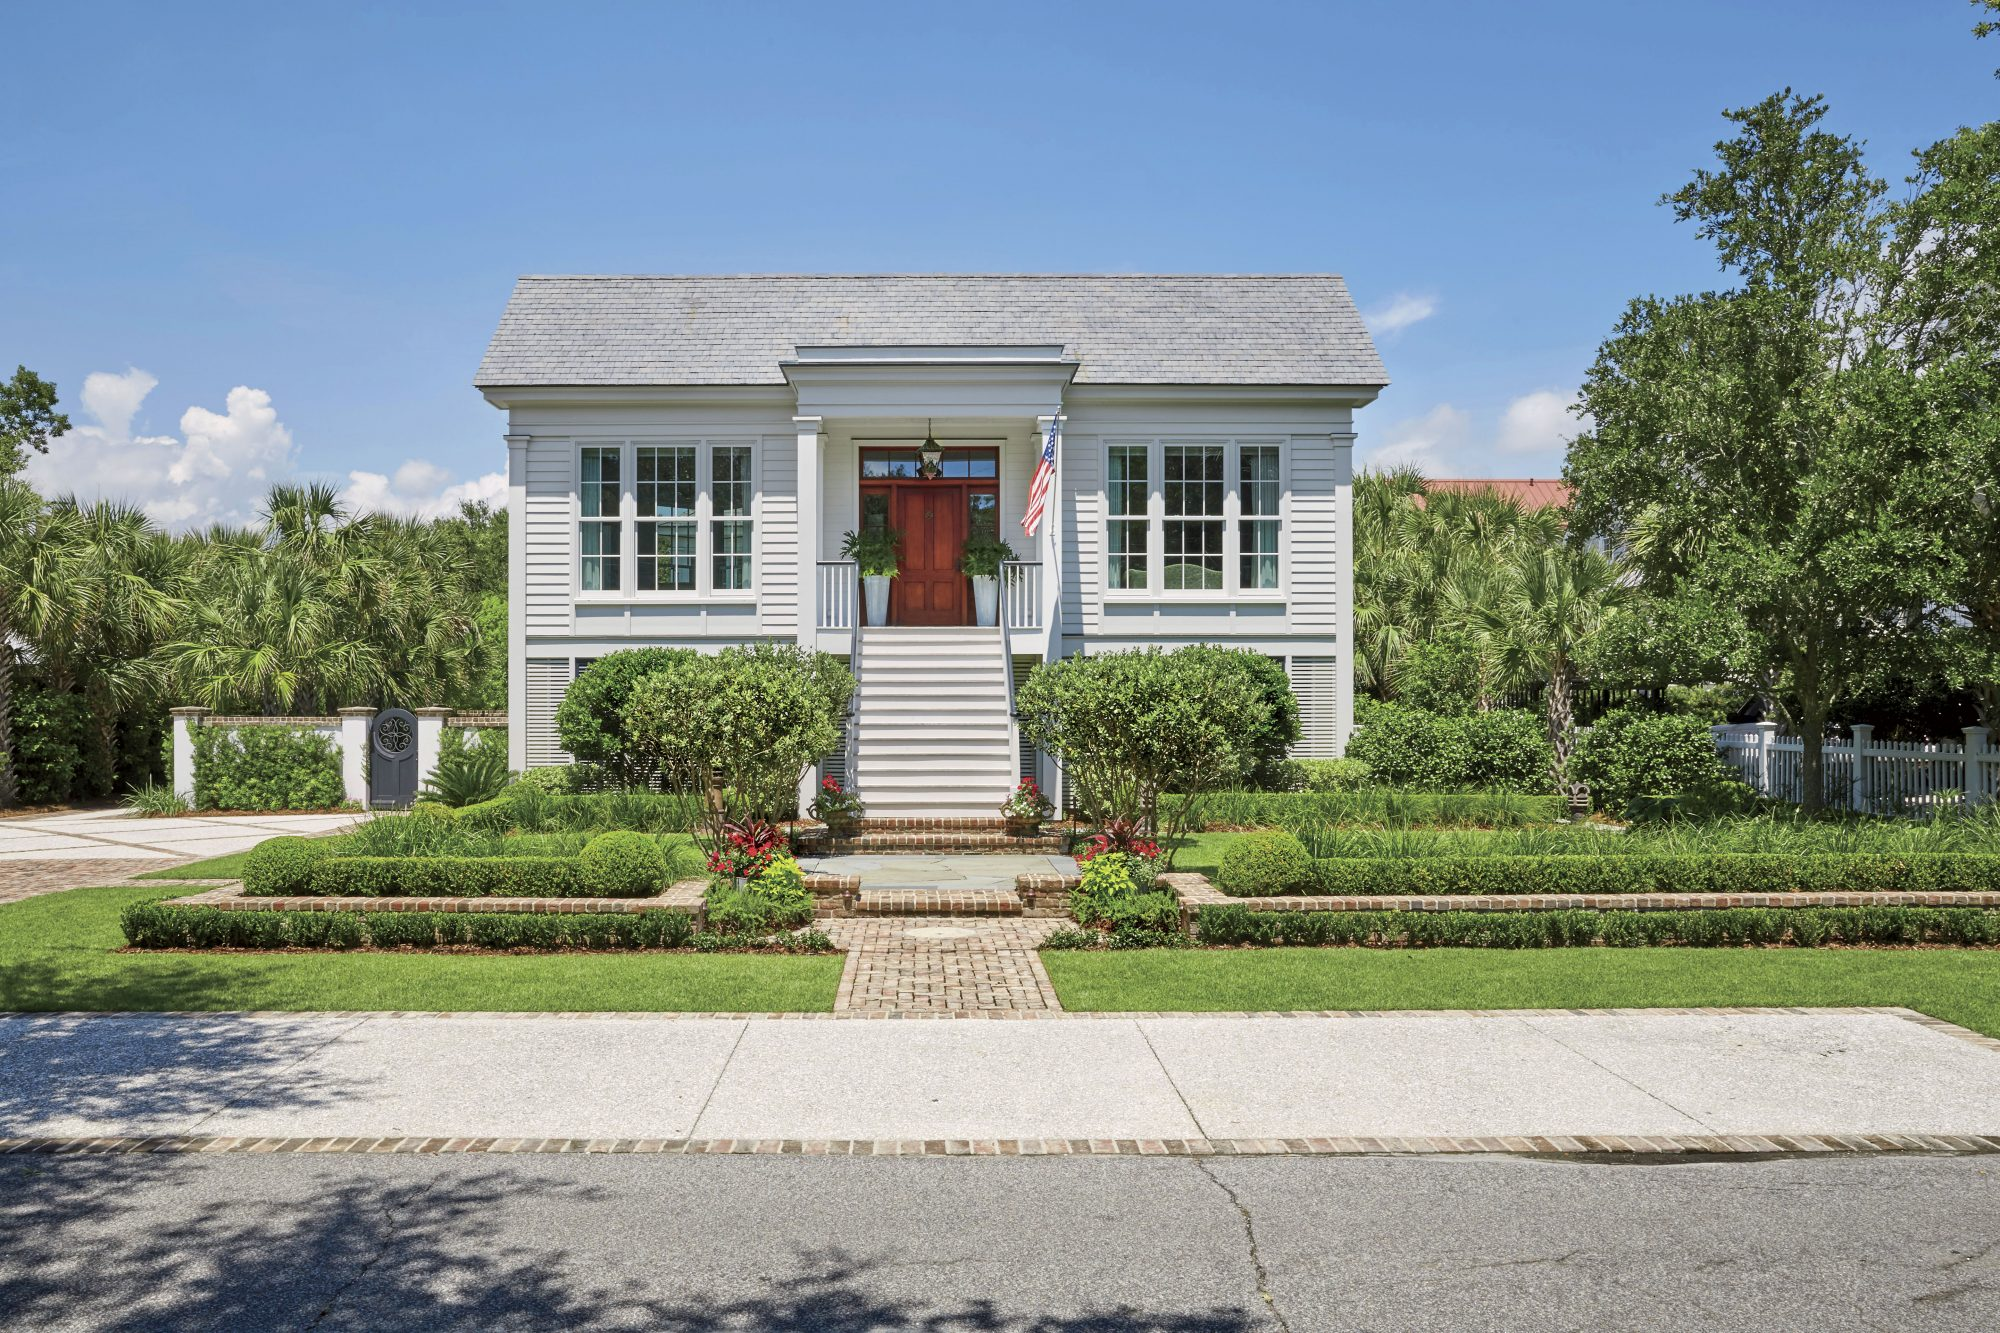 Joan and John Hackenberg Home in Mount Pleasant, SC Designed by Daughter Jenny Keenan